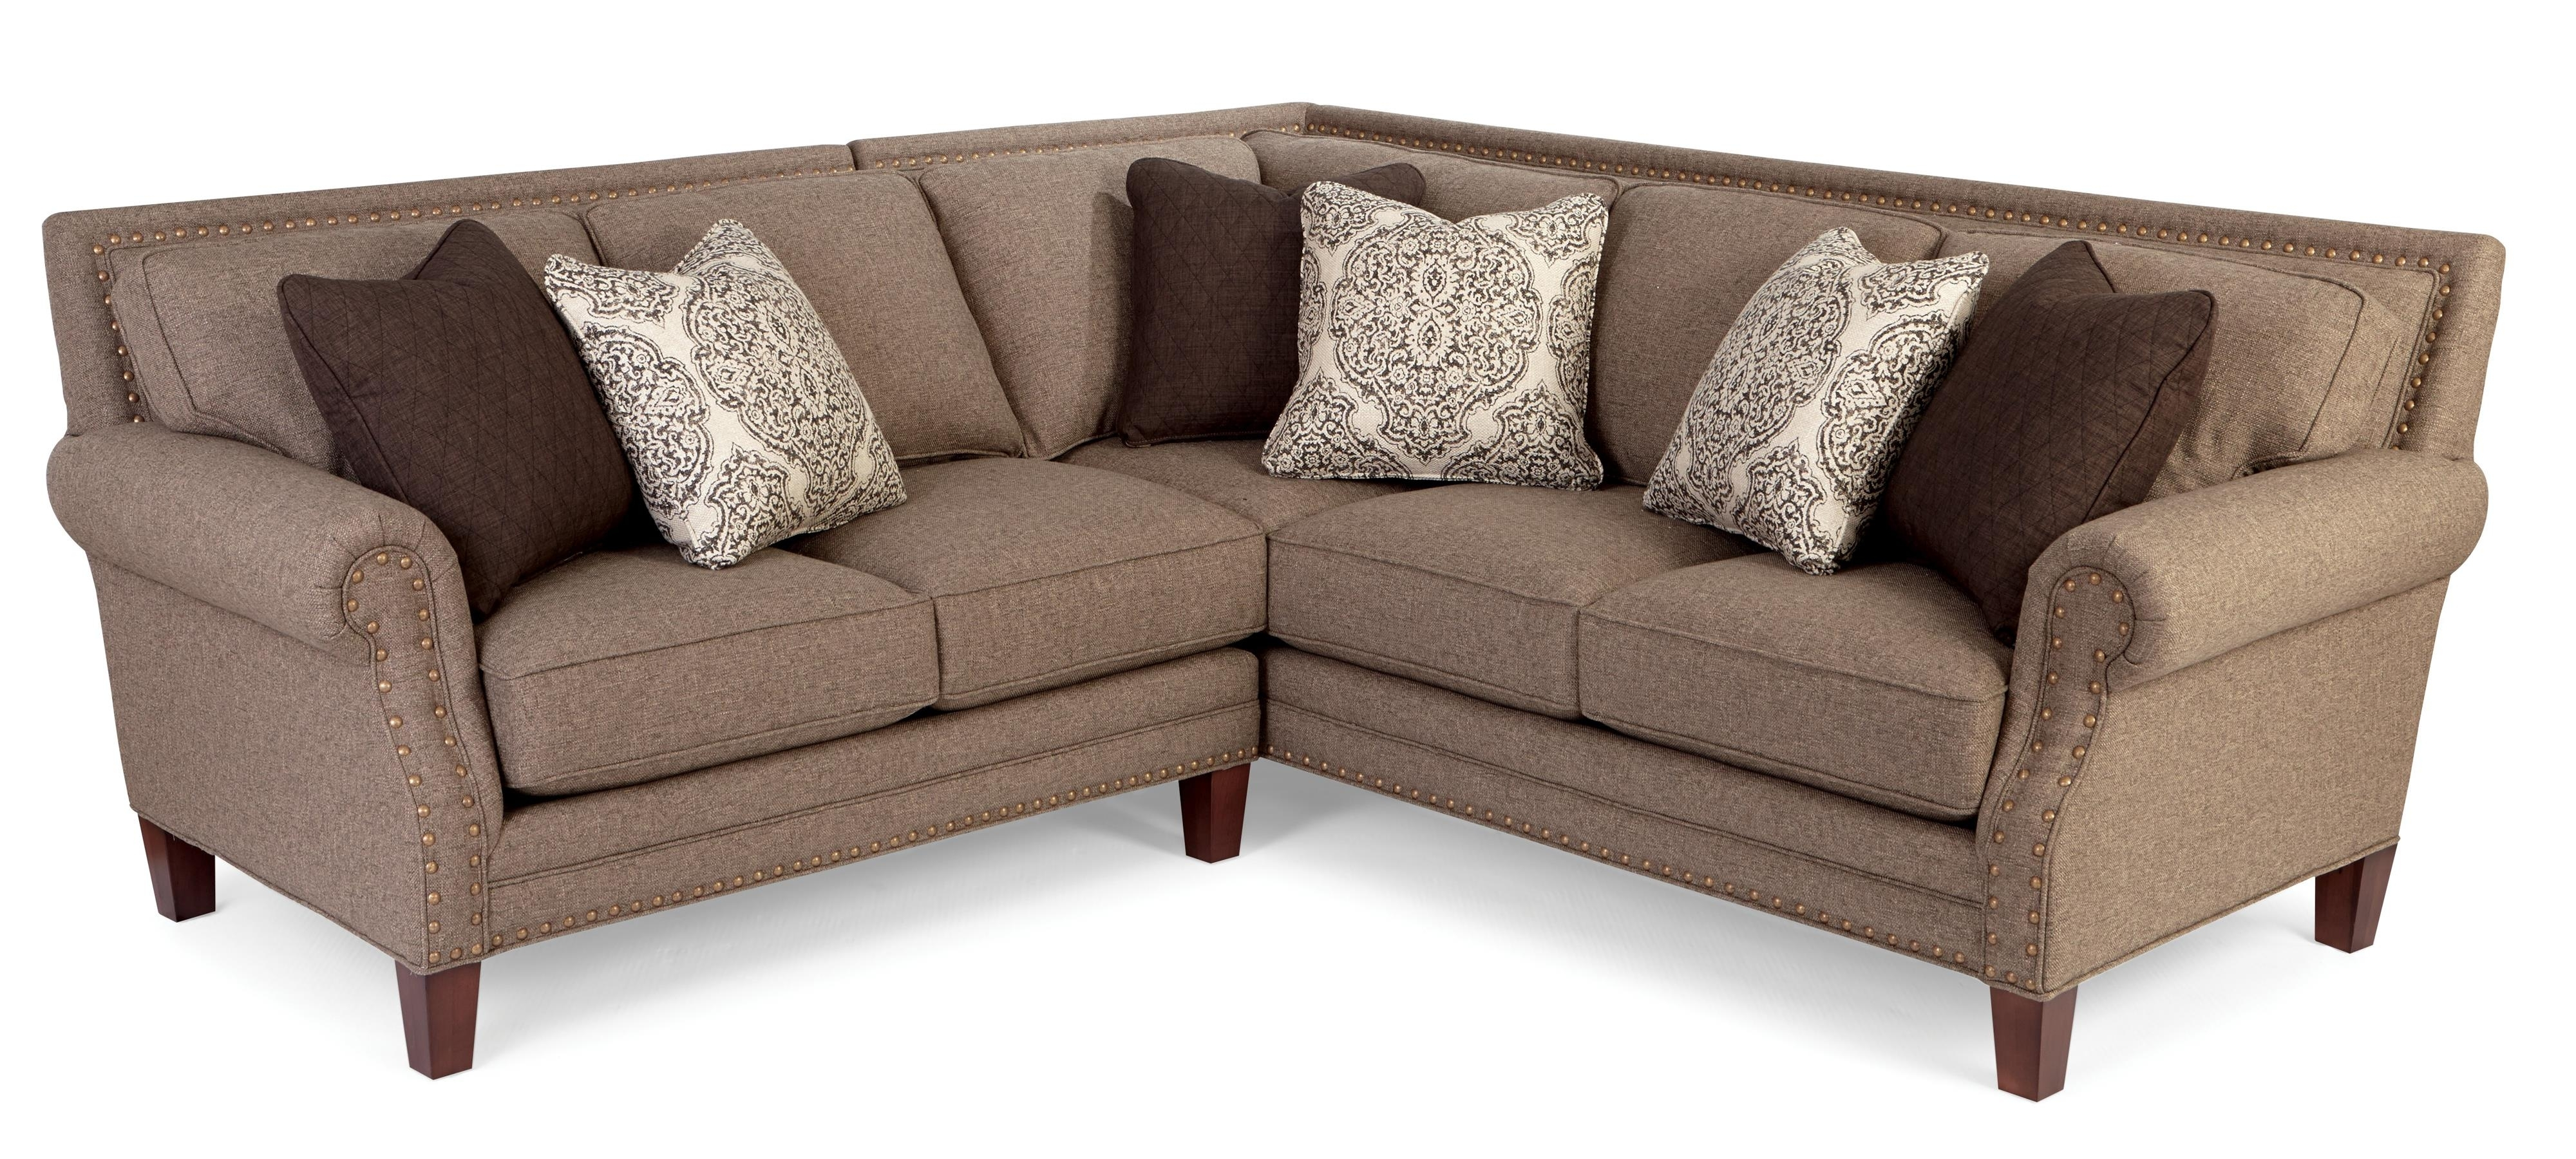 Two Piece Sectional Sofa With Rolled Arms And Light Brass Nailheads Within Sectional Sofas With Nailheads (View 10 of 10)